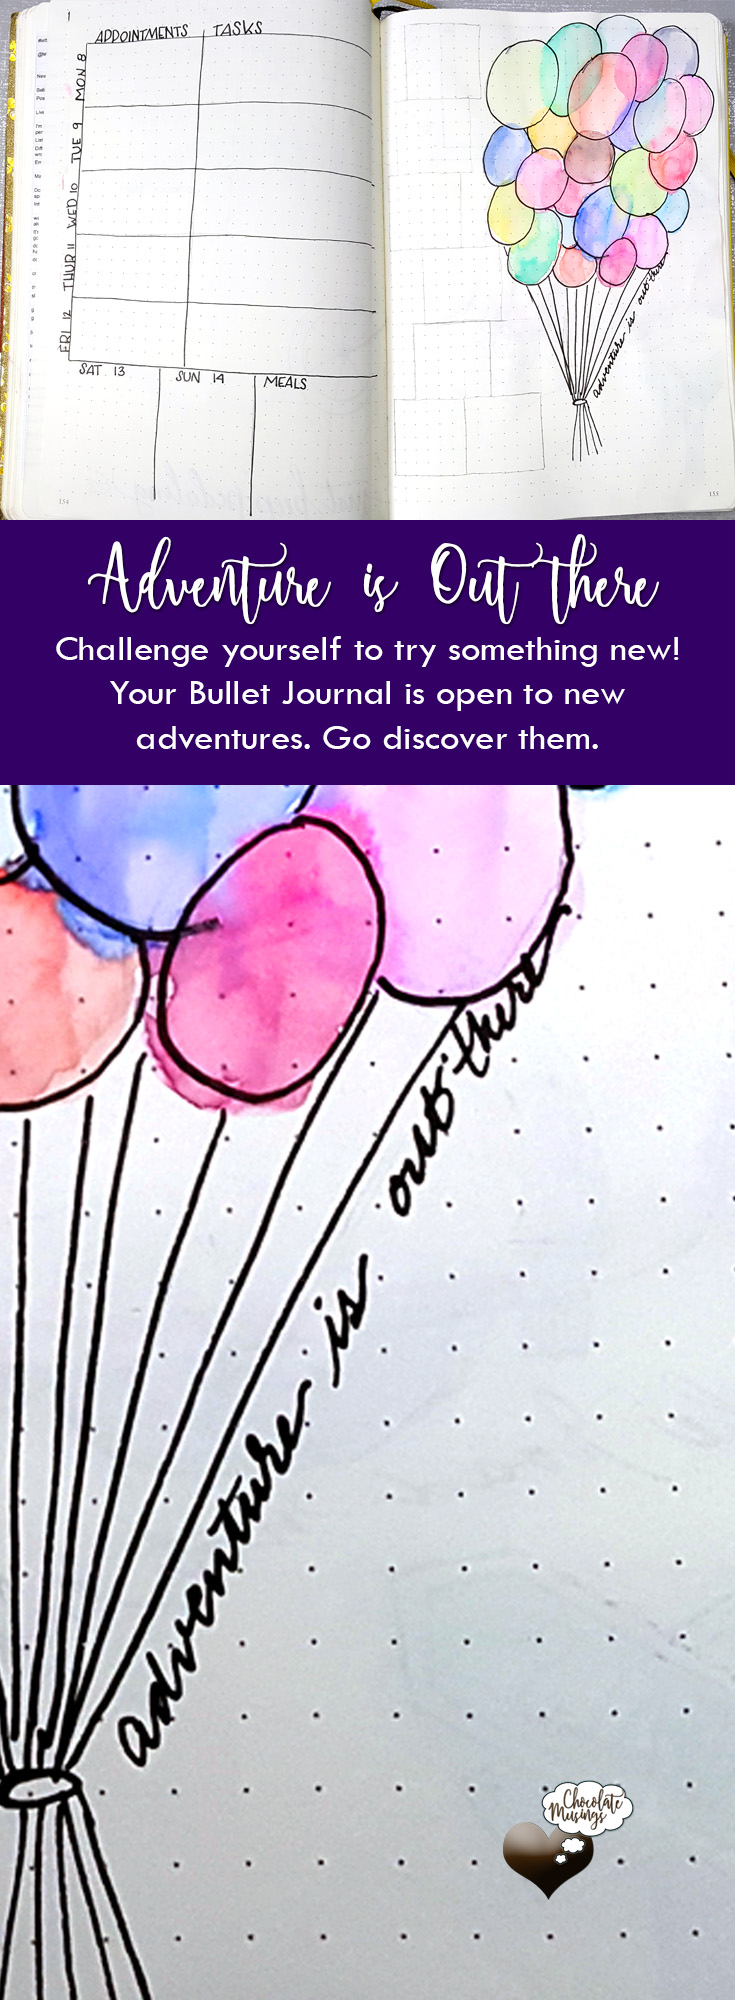 Challenge yourself to try something new! Your Bullet Journal is open to new adventures. Go discover them. Learning to paint watercolor balloons - weekly layout